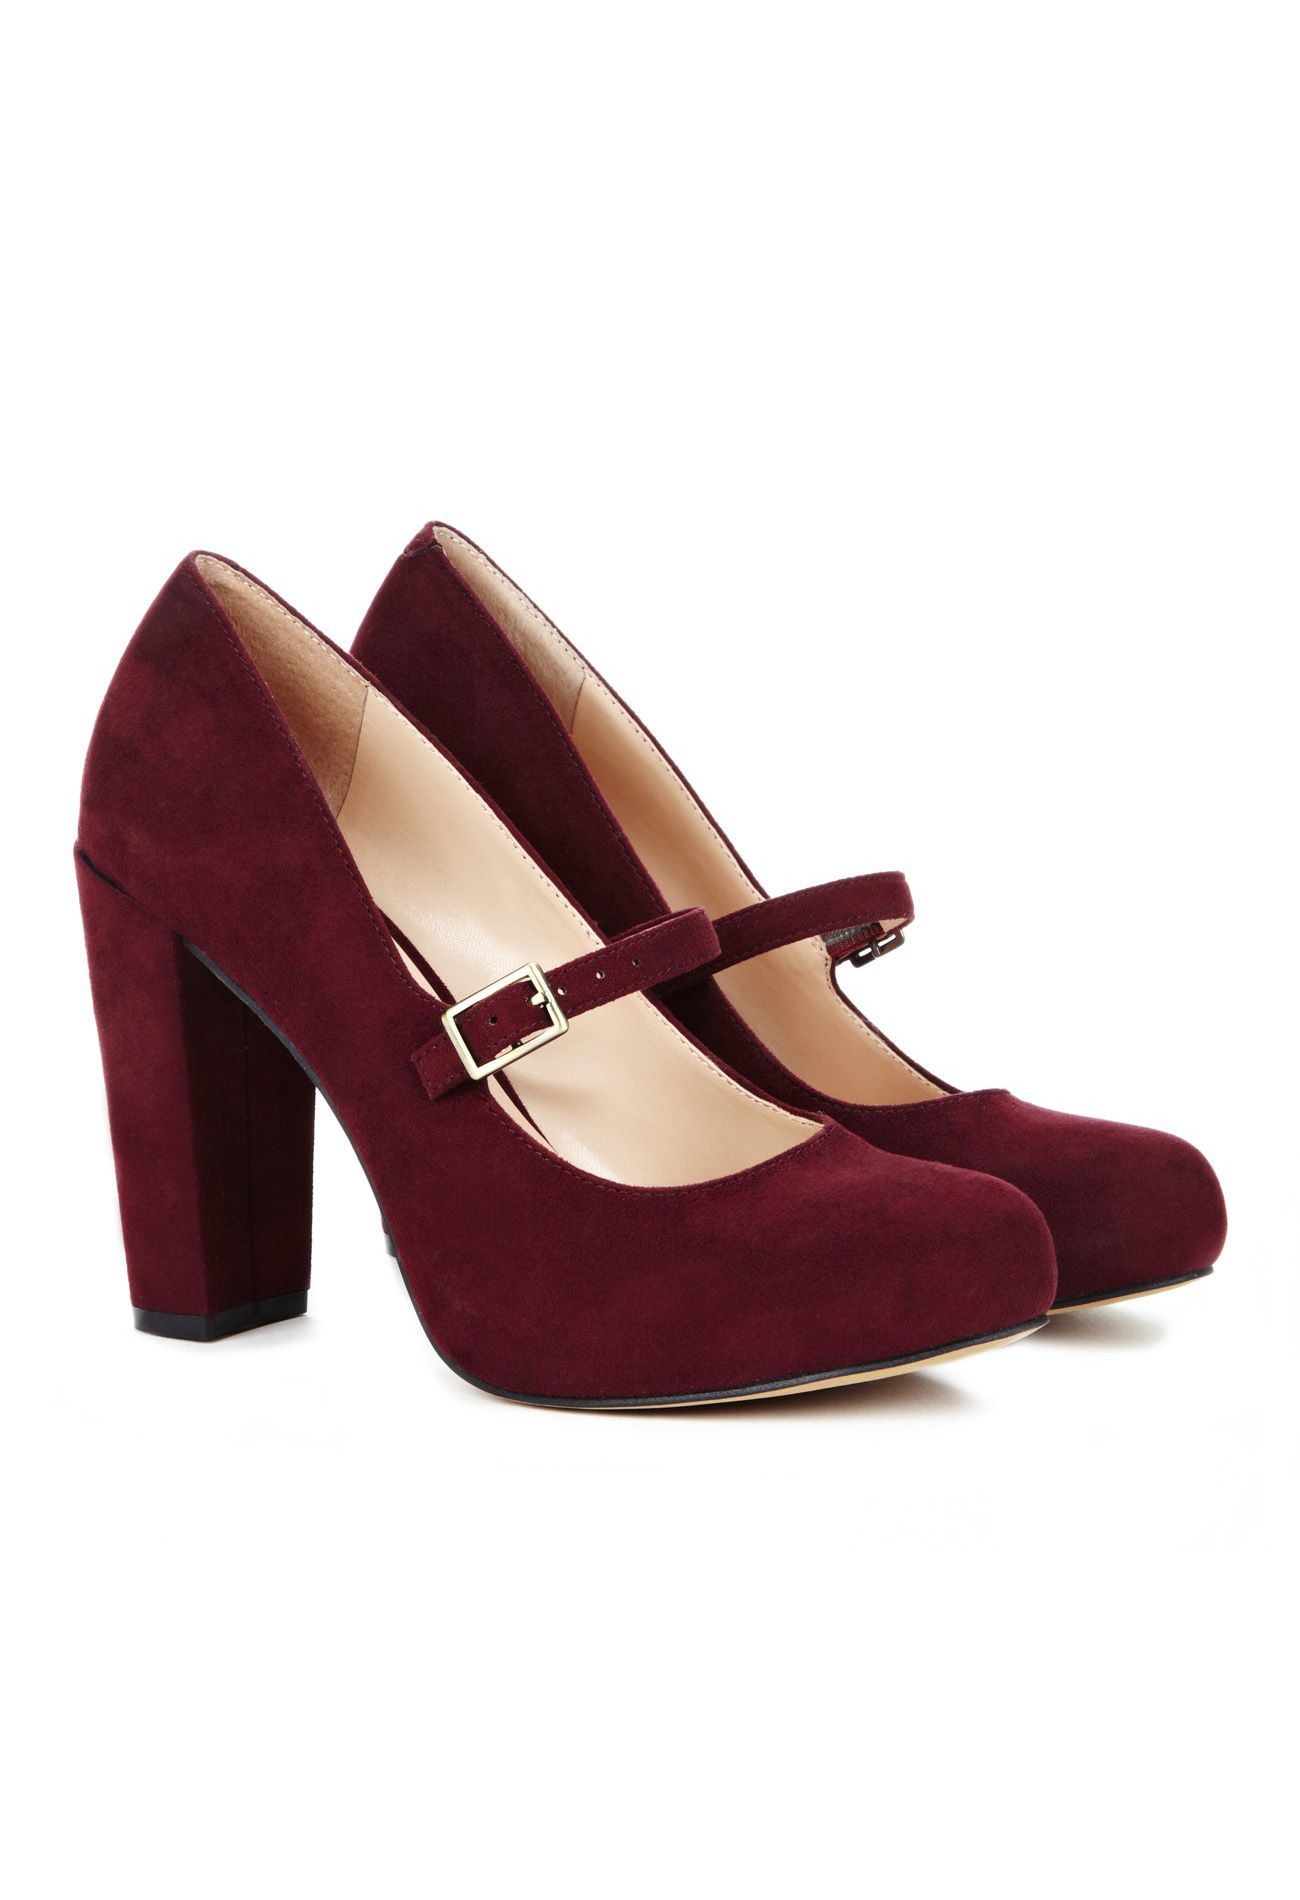 Burgundy Heels - perfect for fall- love the fat heel for balance & the  rounded